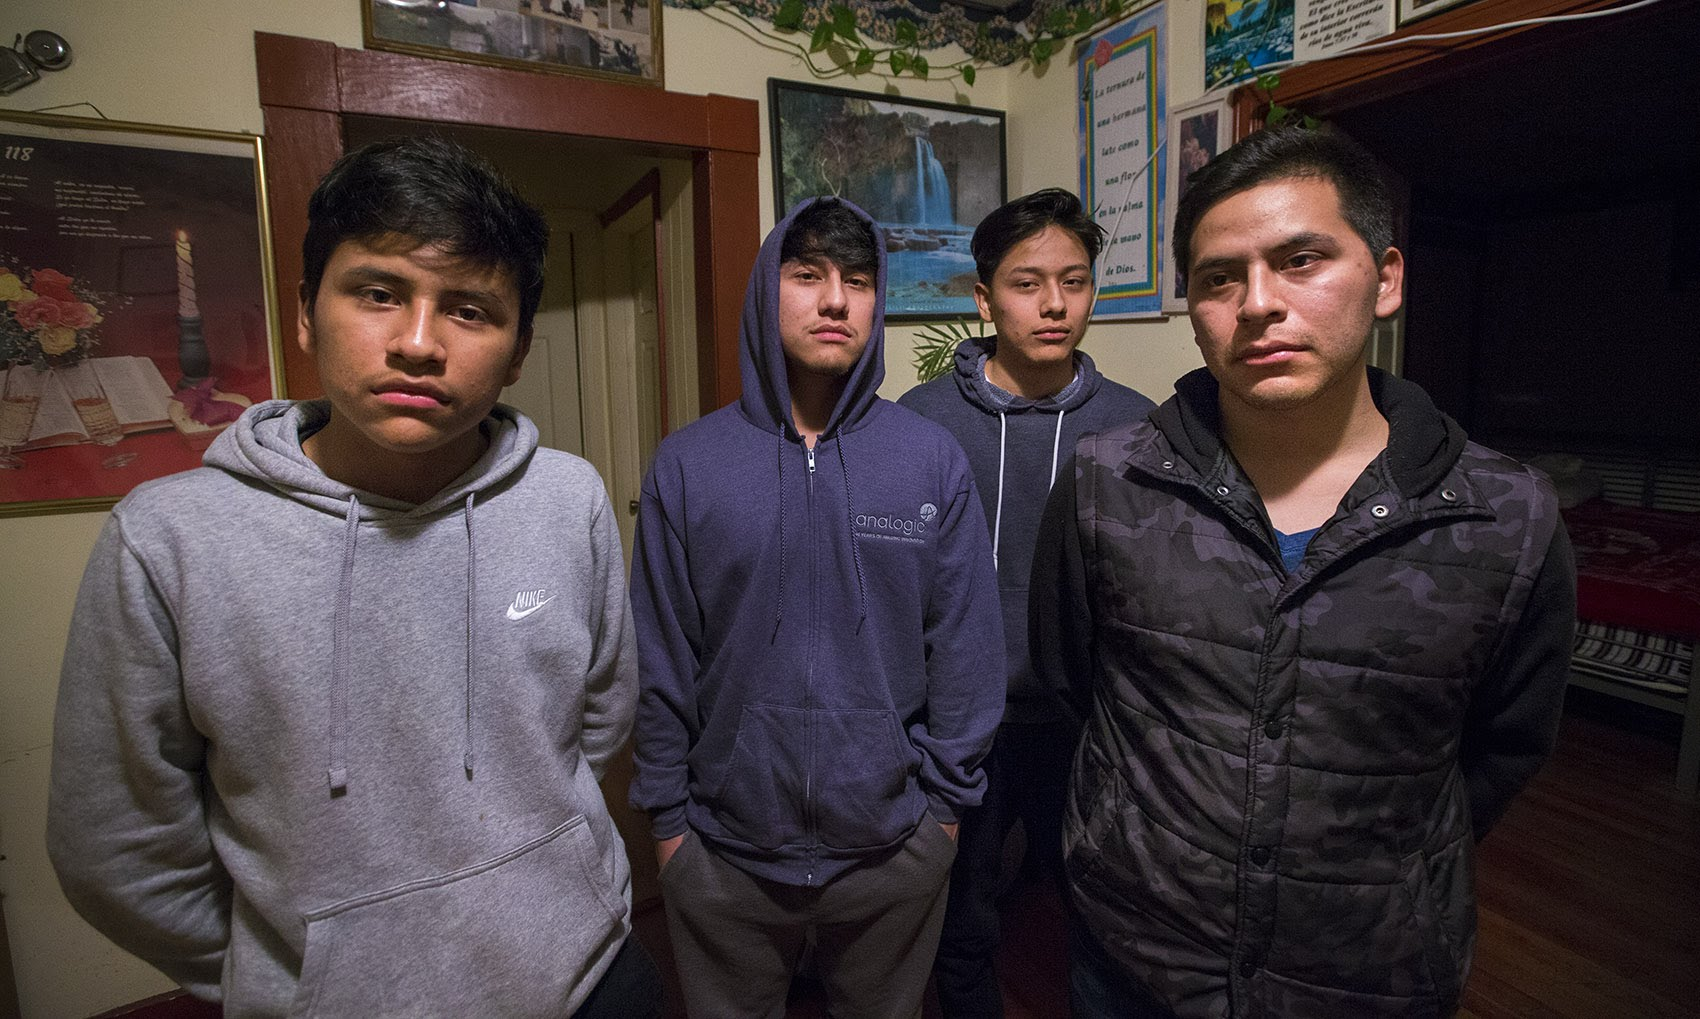 From left, the Macario brothers: Saul, 16, Erwin, 21, Anthony, 18, and Isidro, 27. Unlike his brothers, Isidro was not born in the U.S. and was deported to Guatemala on Wednesday. (Jesse Costa/WBUR)